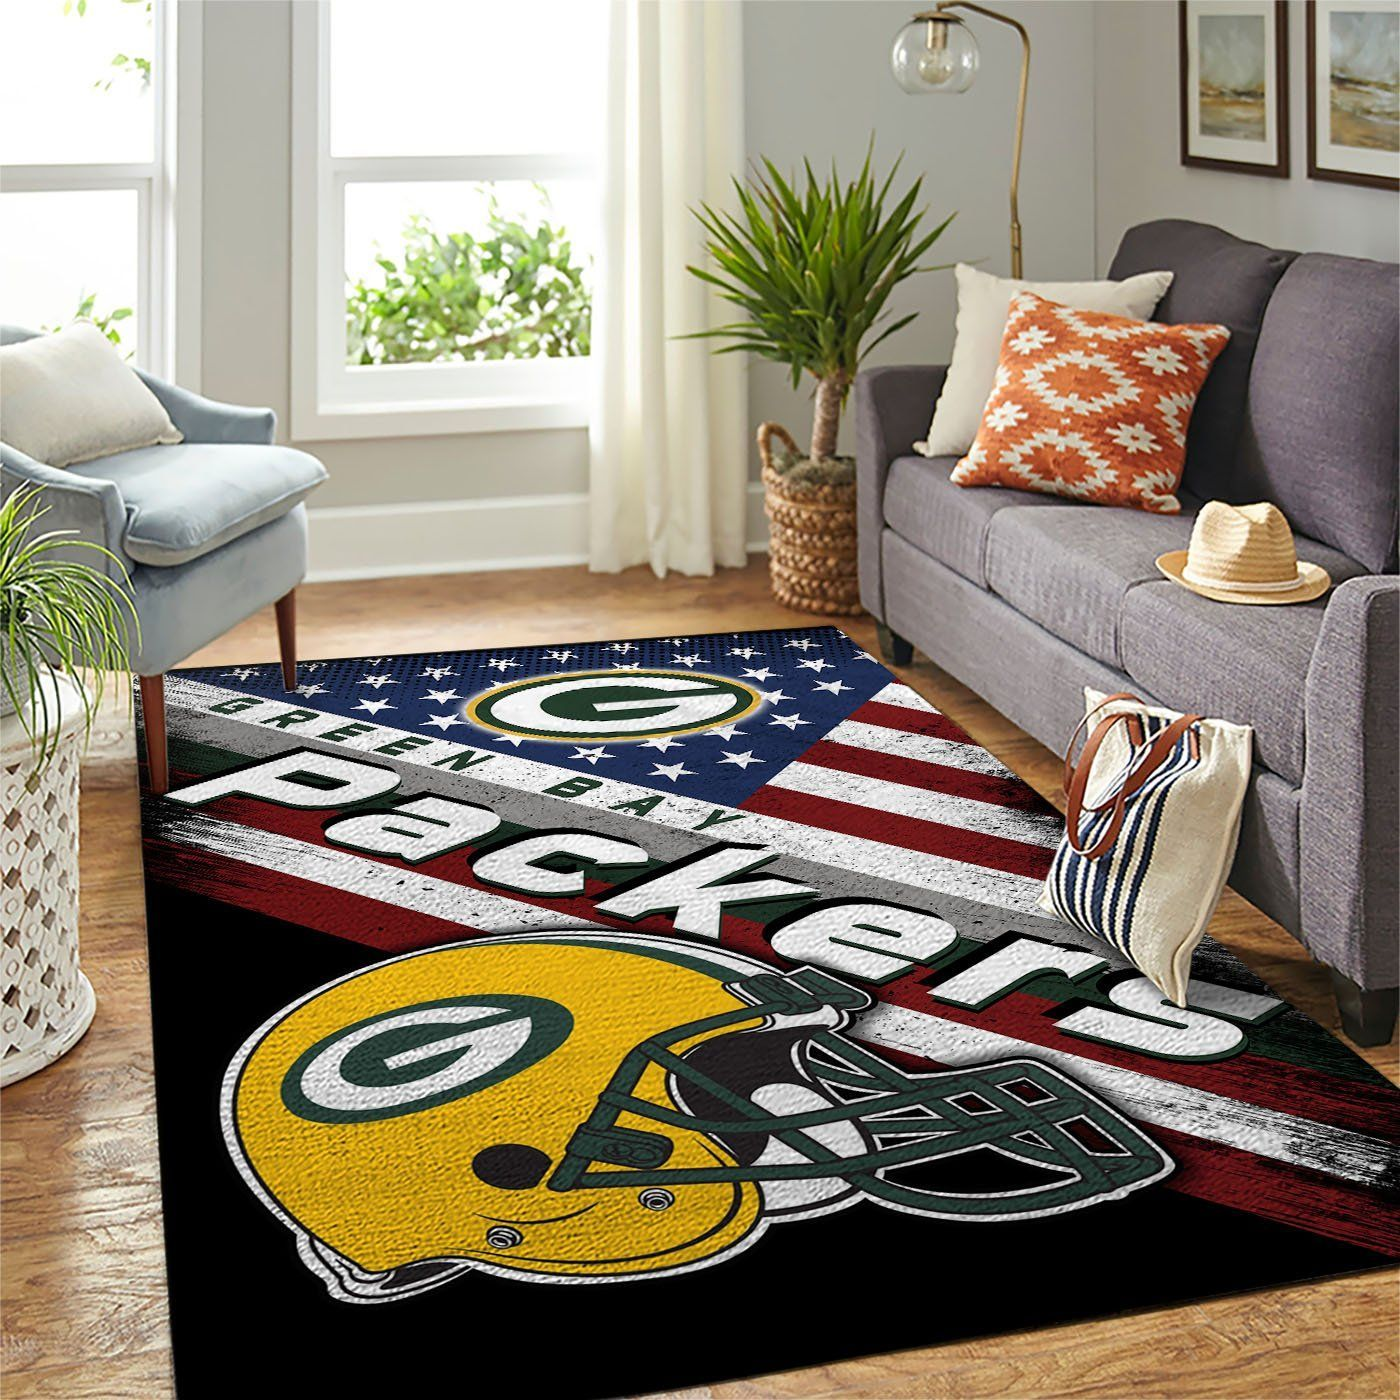 Amazon Green Bay Packers Living Room Area No3109 Rug